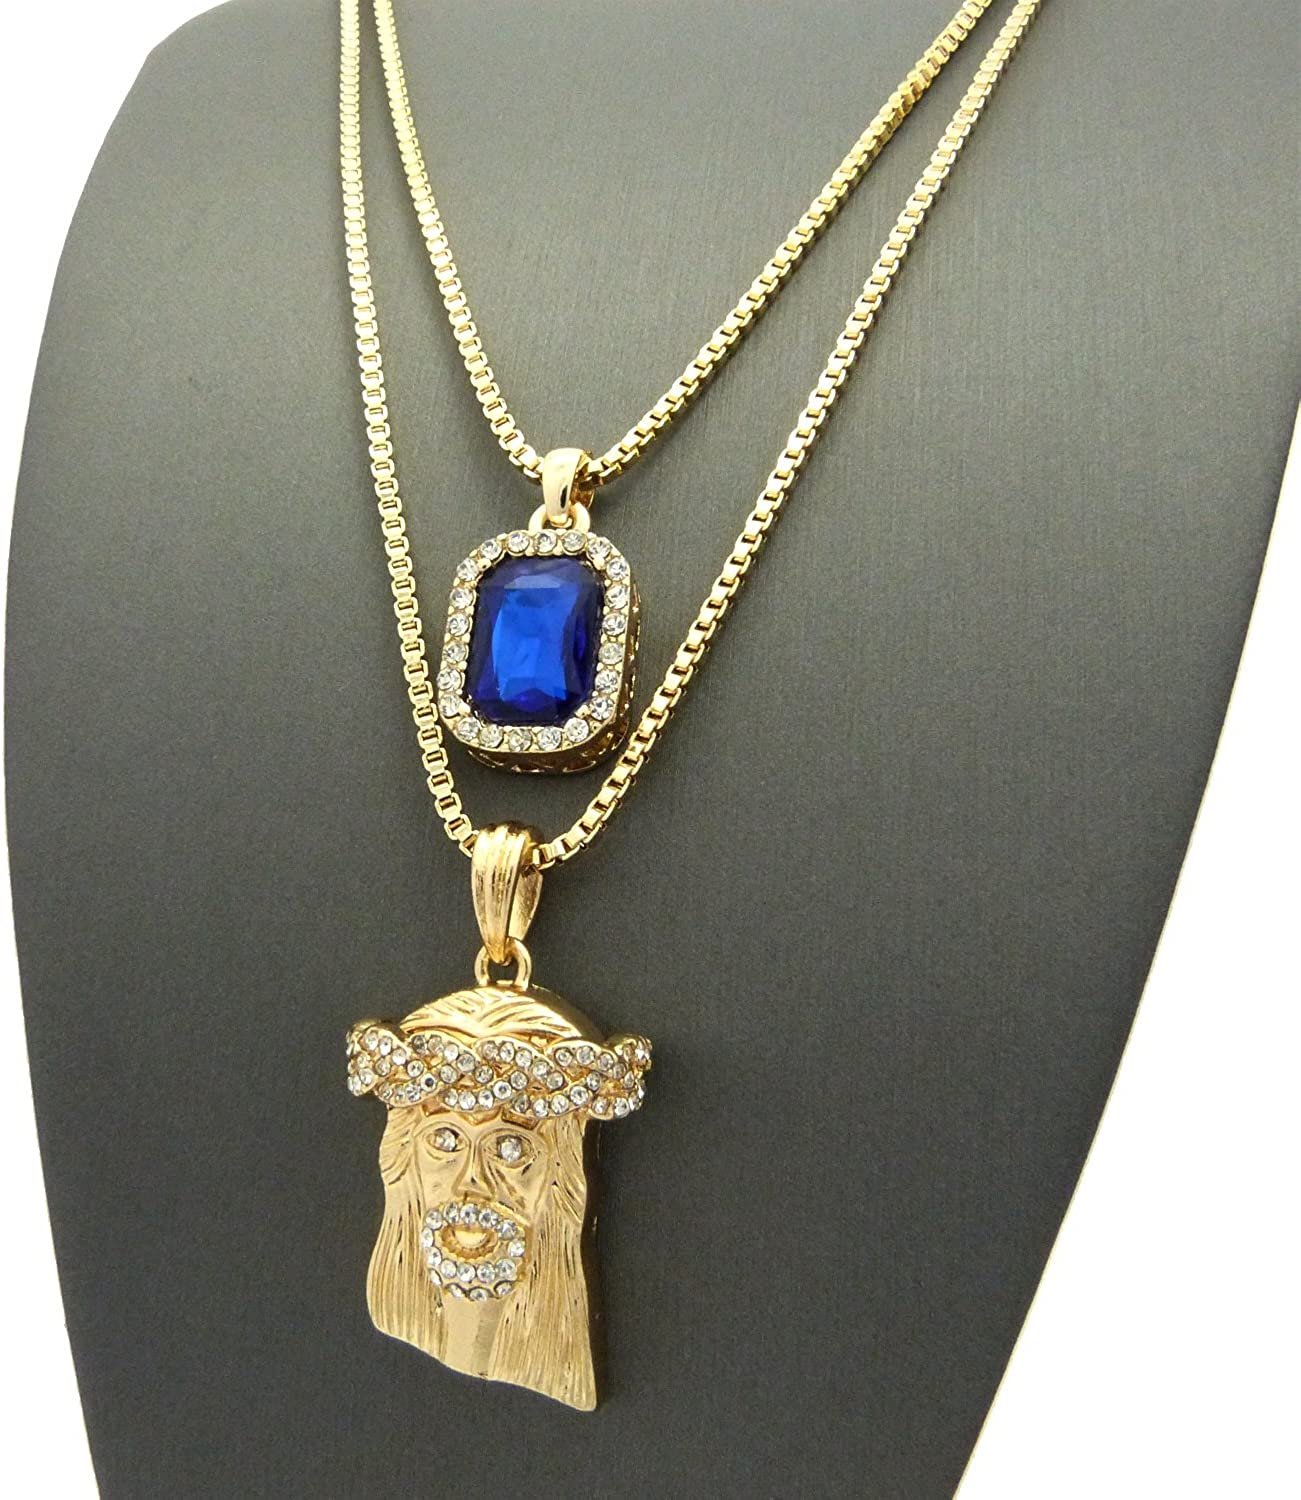 Details about  /SILVER SETTING WITH ROYAL BLUE STONE CROSS PENDANT ADJUSTABLE ROYAL BLUE CORD